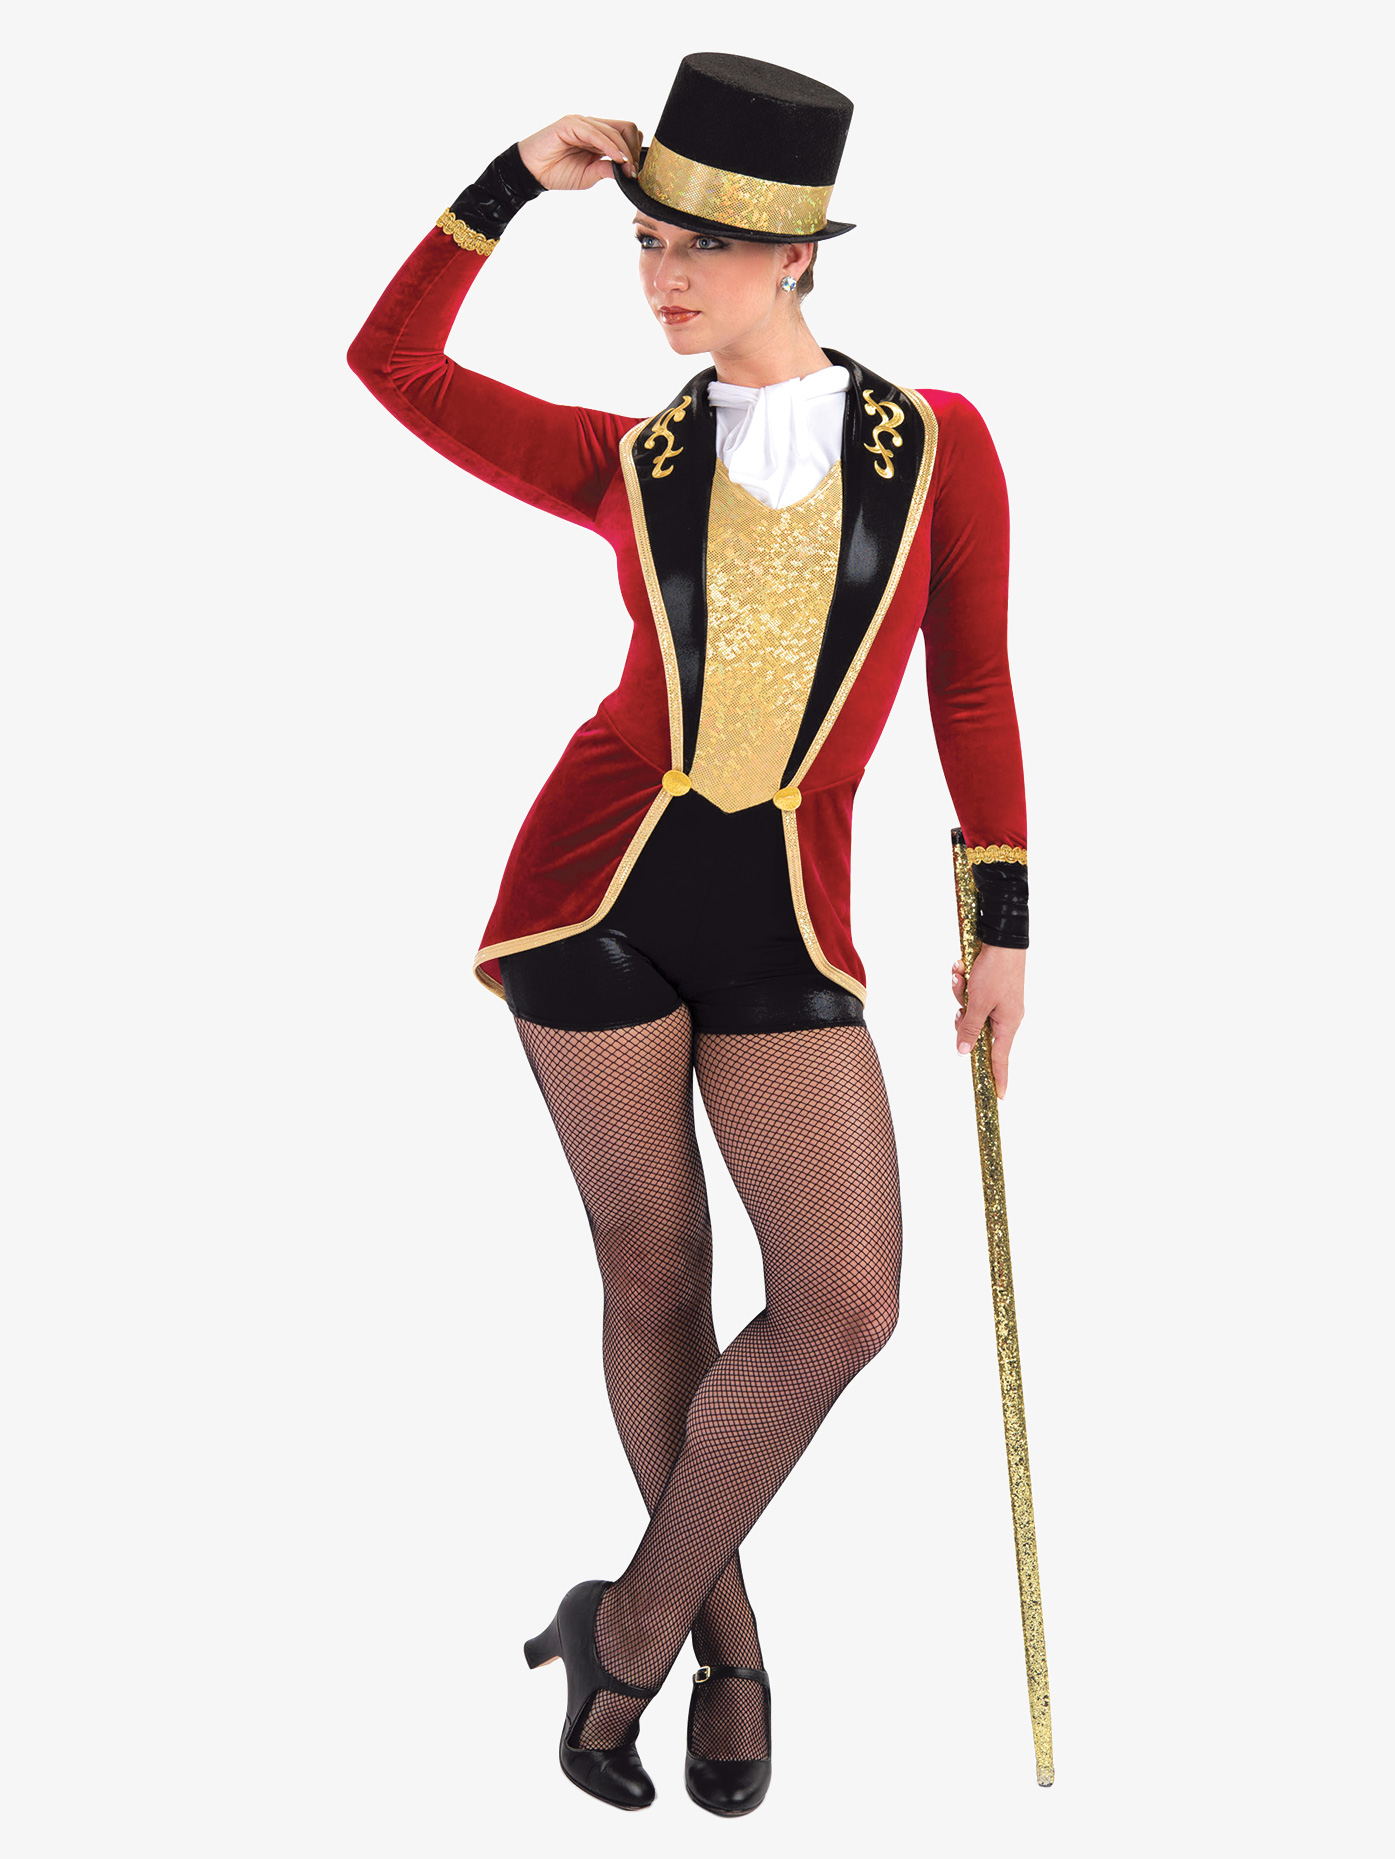 Quot The Greatest Showman Quot Character Dance Shorty Unitard A